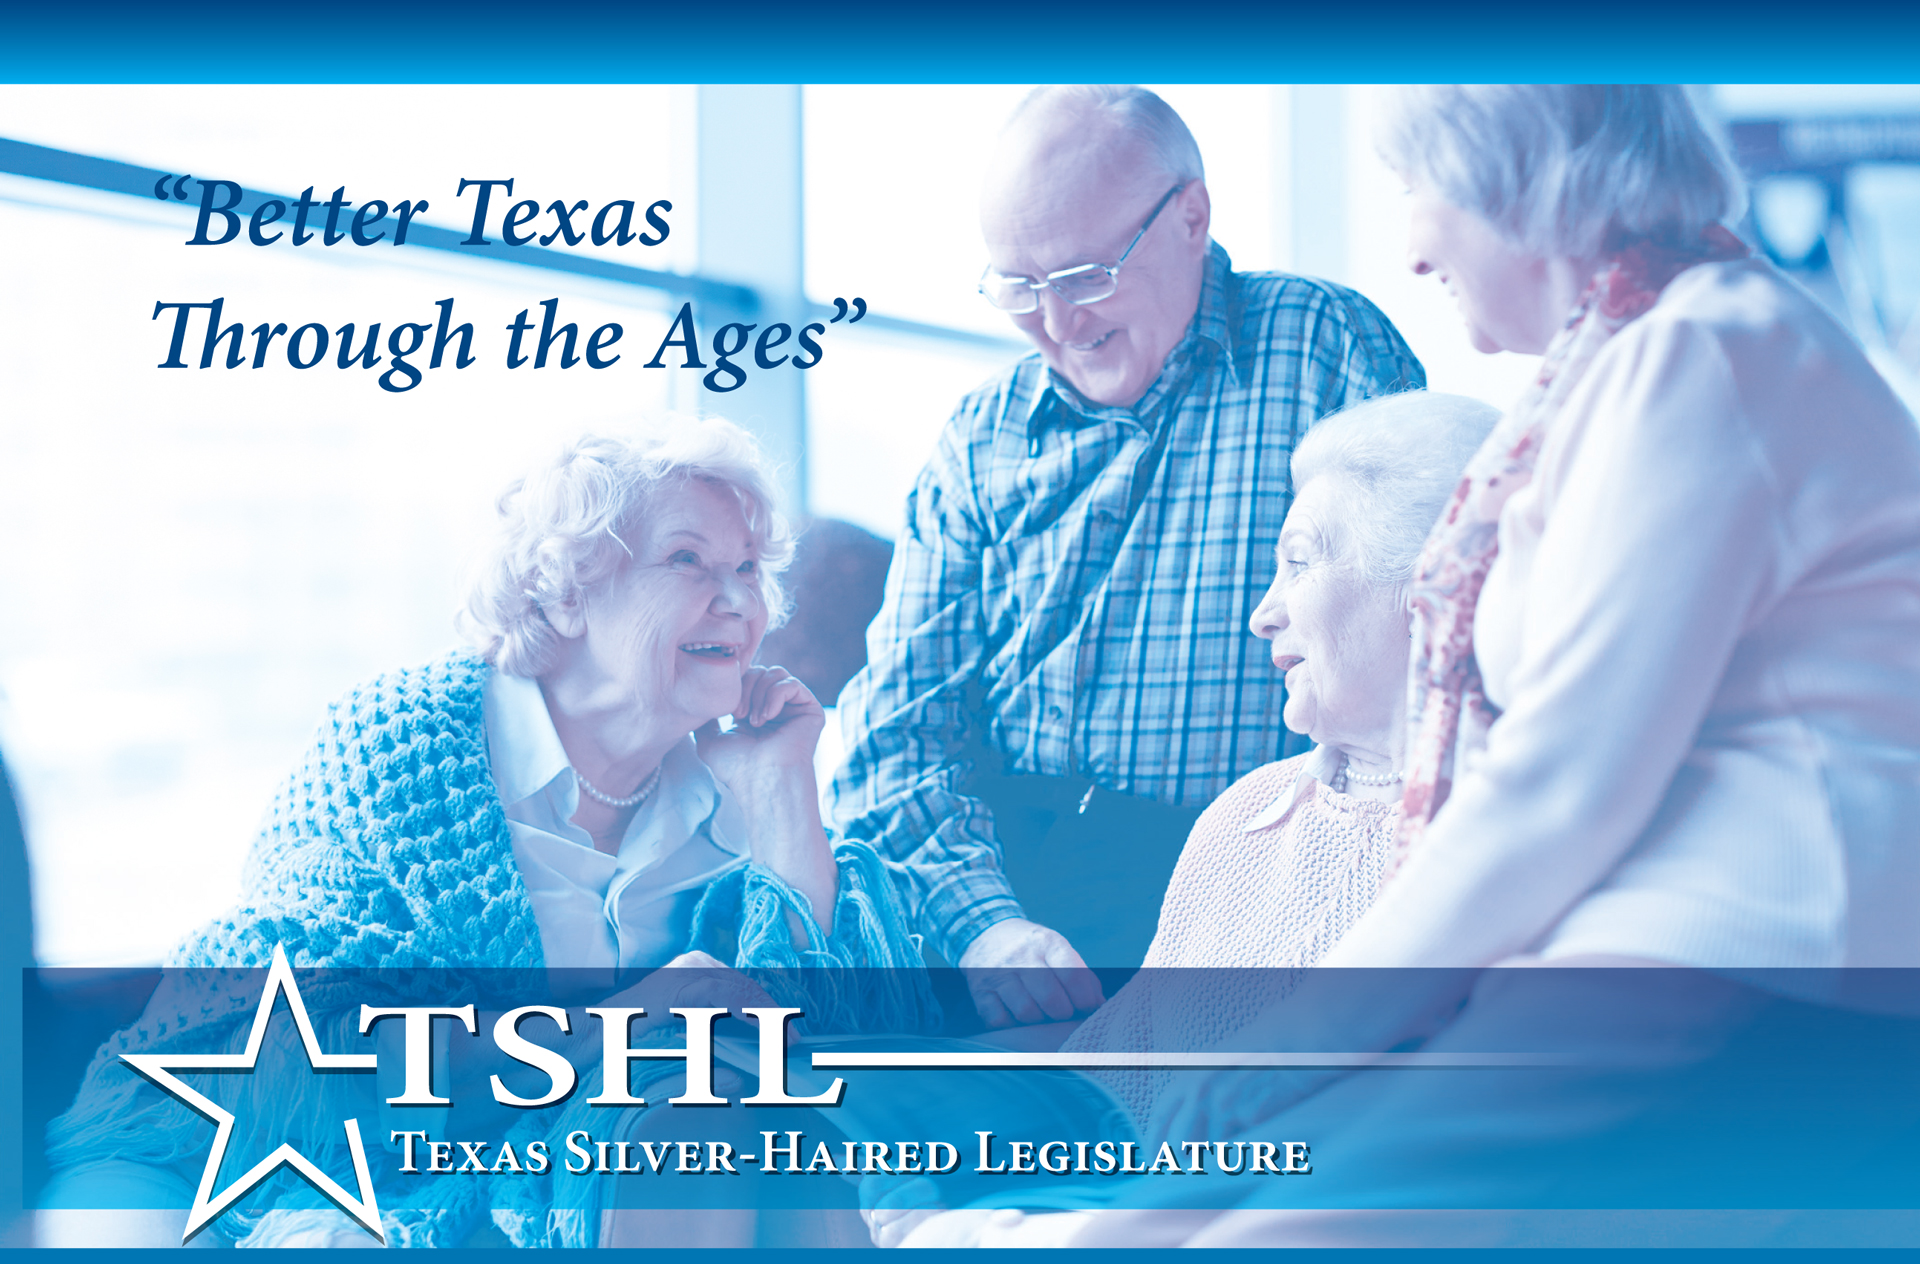 Texas Silver-Haired Legislature (TSHL)